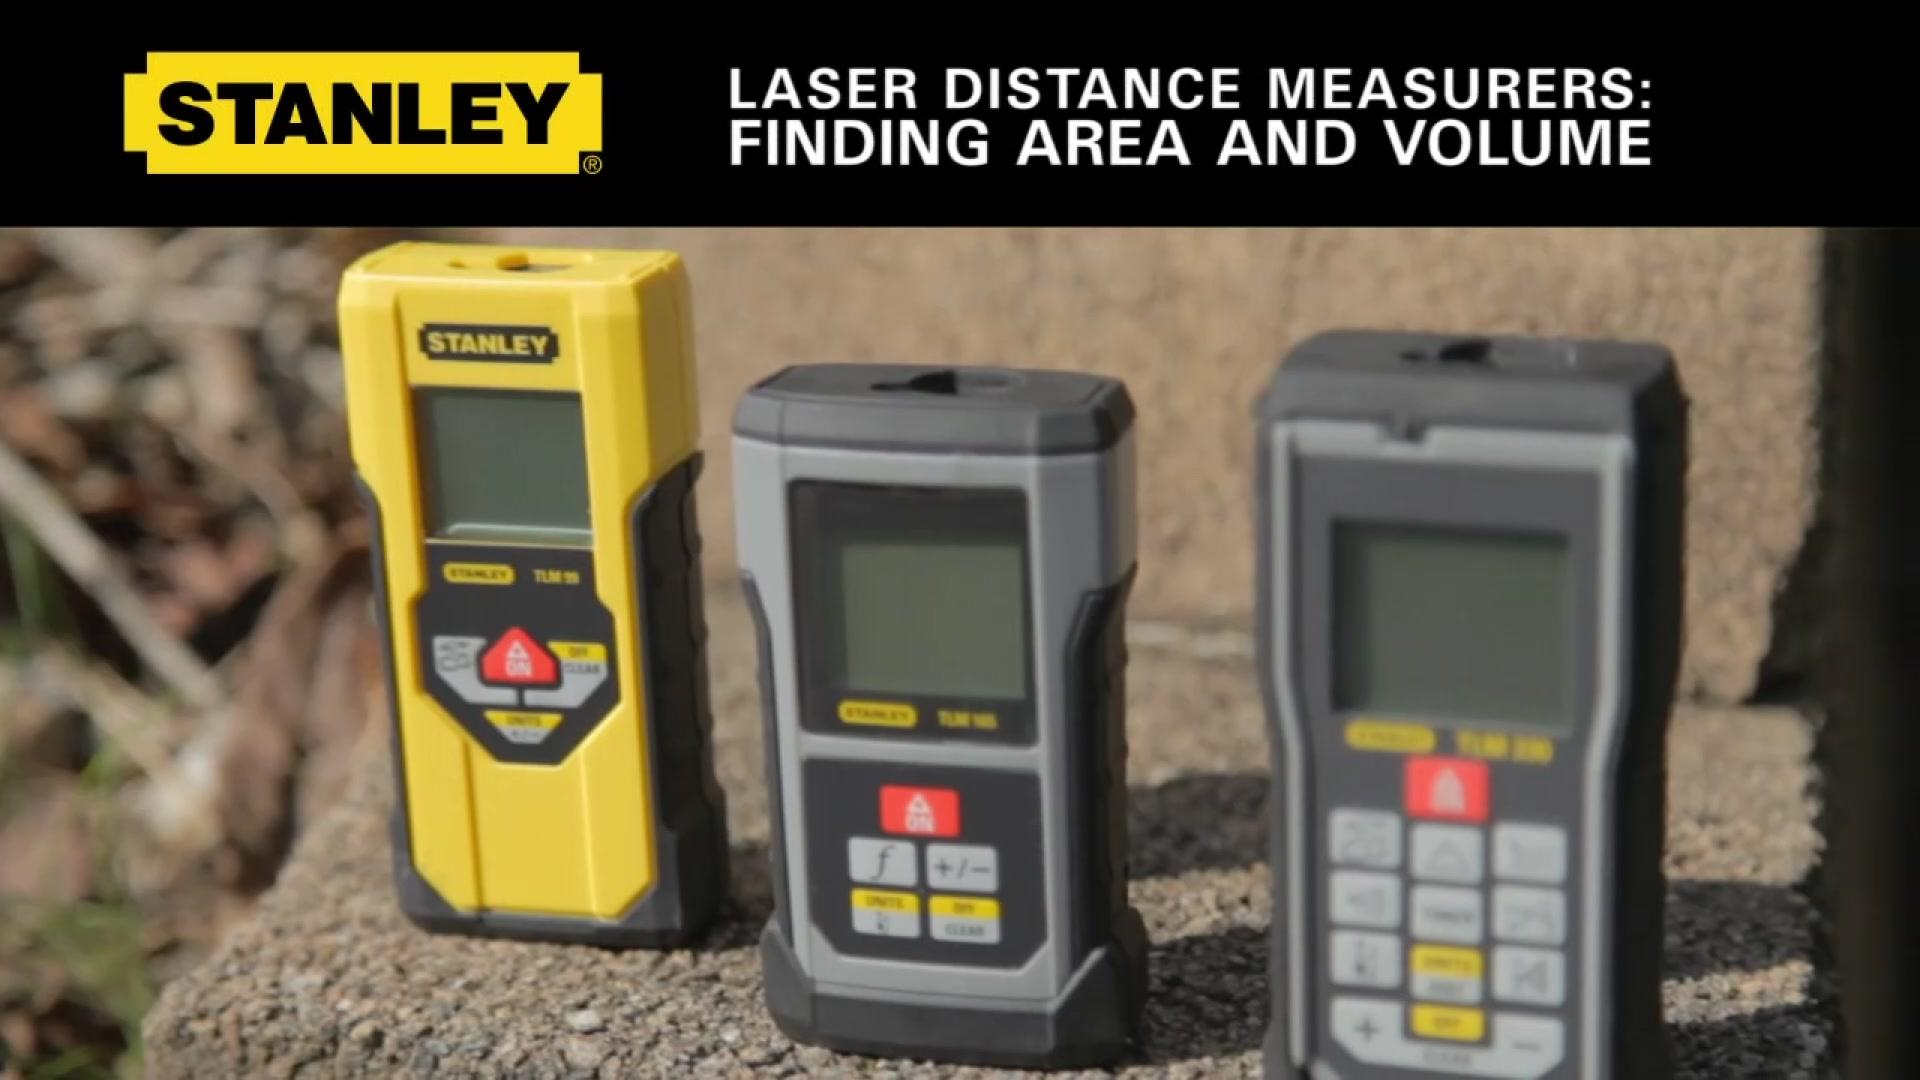 Finding Area and Volume on Stanley LDM's | STANLEY